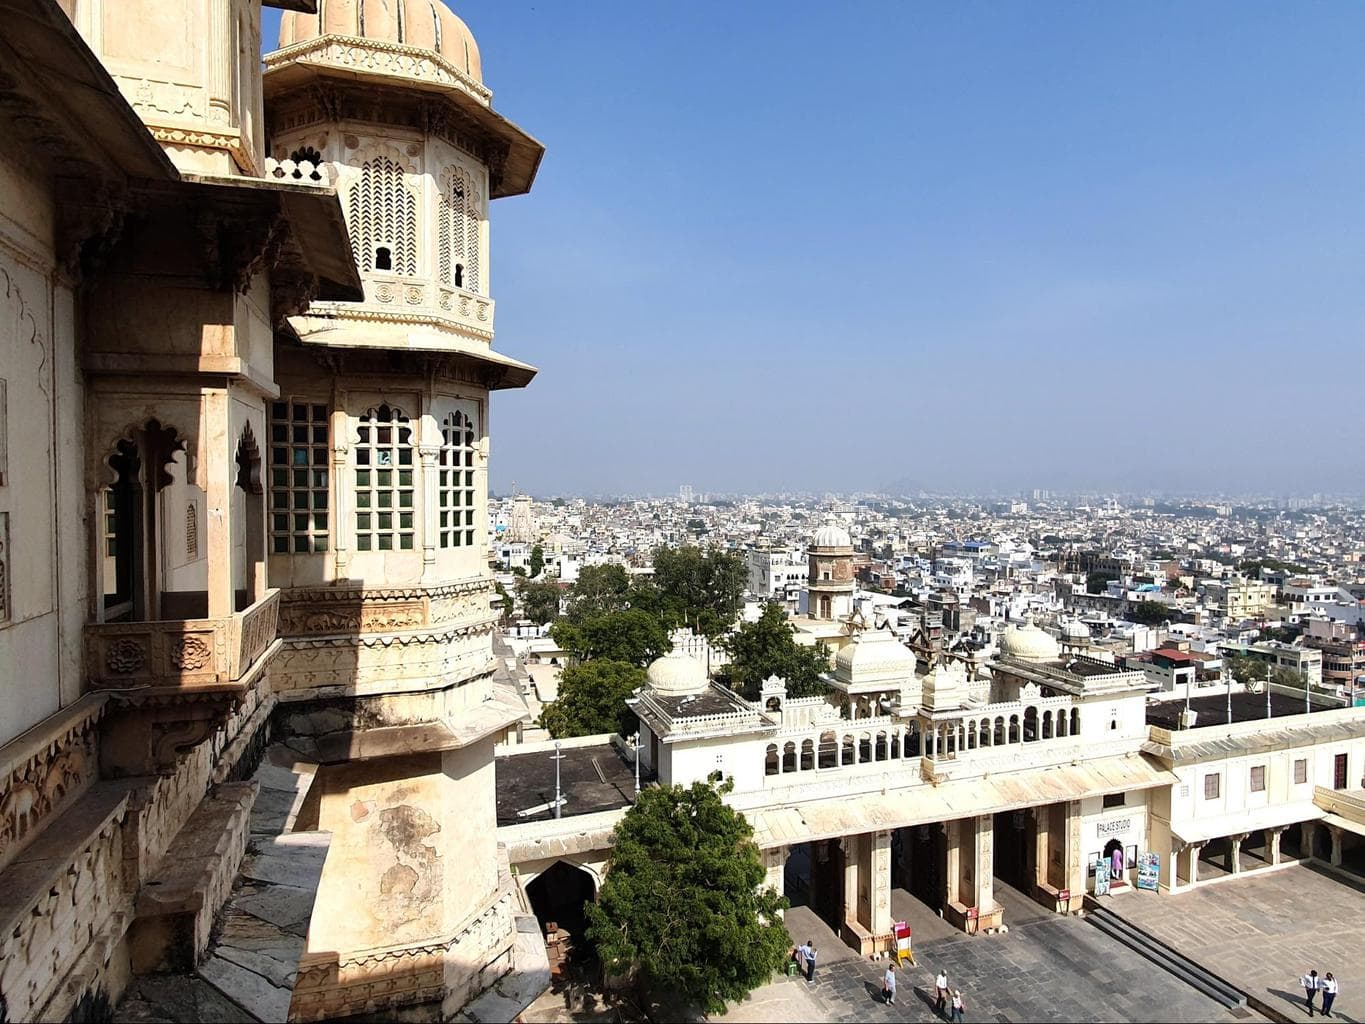 Views of Udaipur from the City Palace